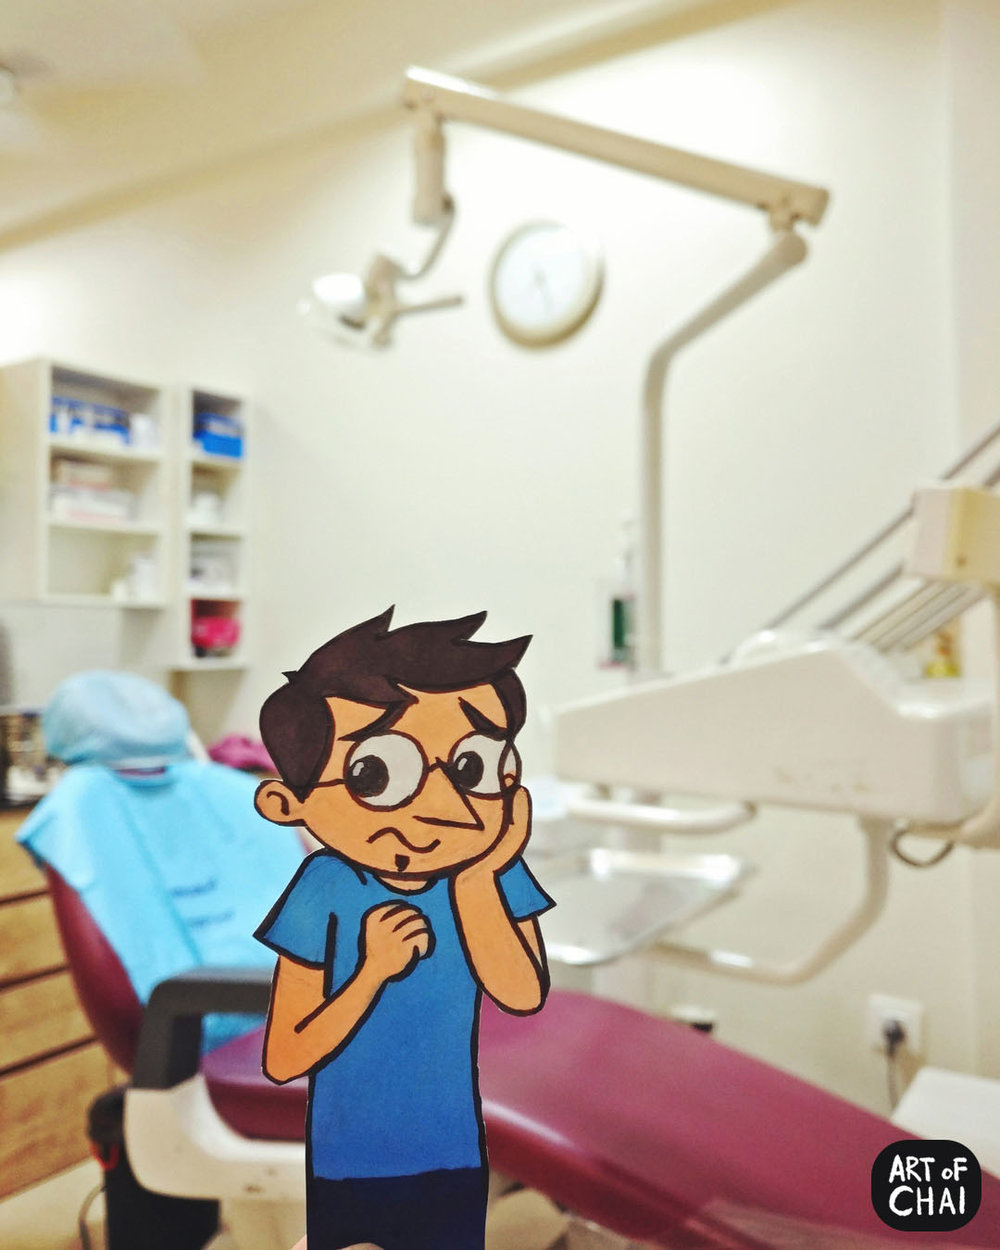 Wisdom tooth pain means the scary trip to the dentist.